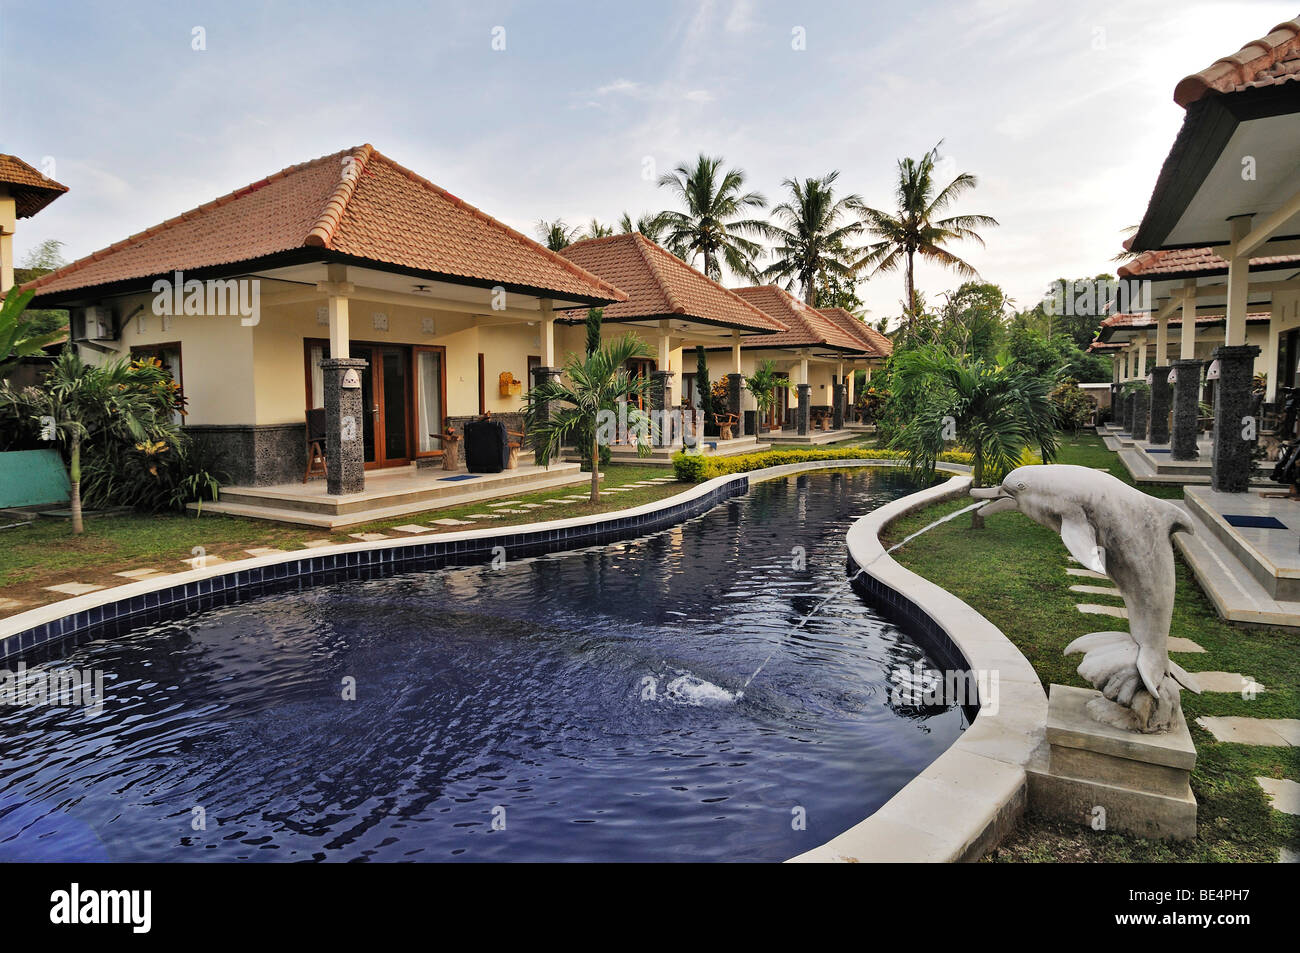 Bungalow complex of Jupp Palling near Denpasar, Bali, Indonesia, Southeast Asia Stock Photo